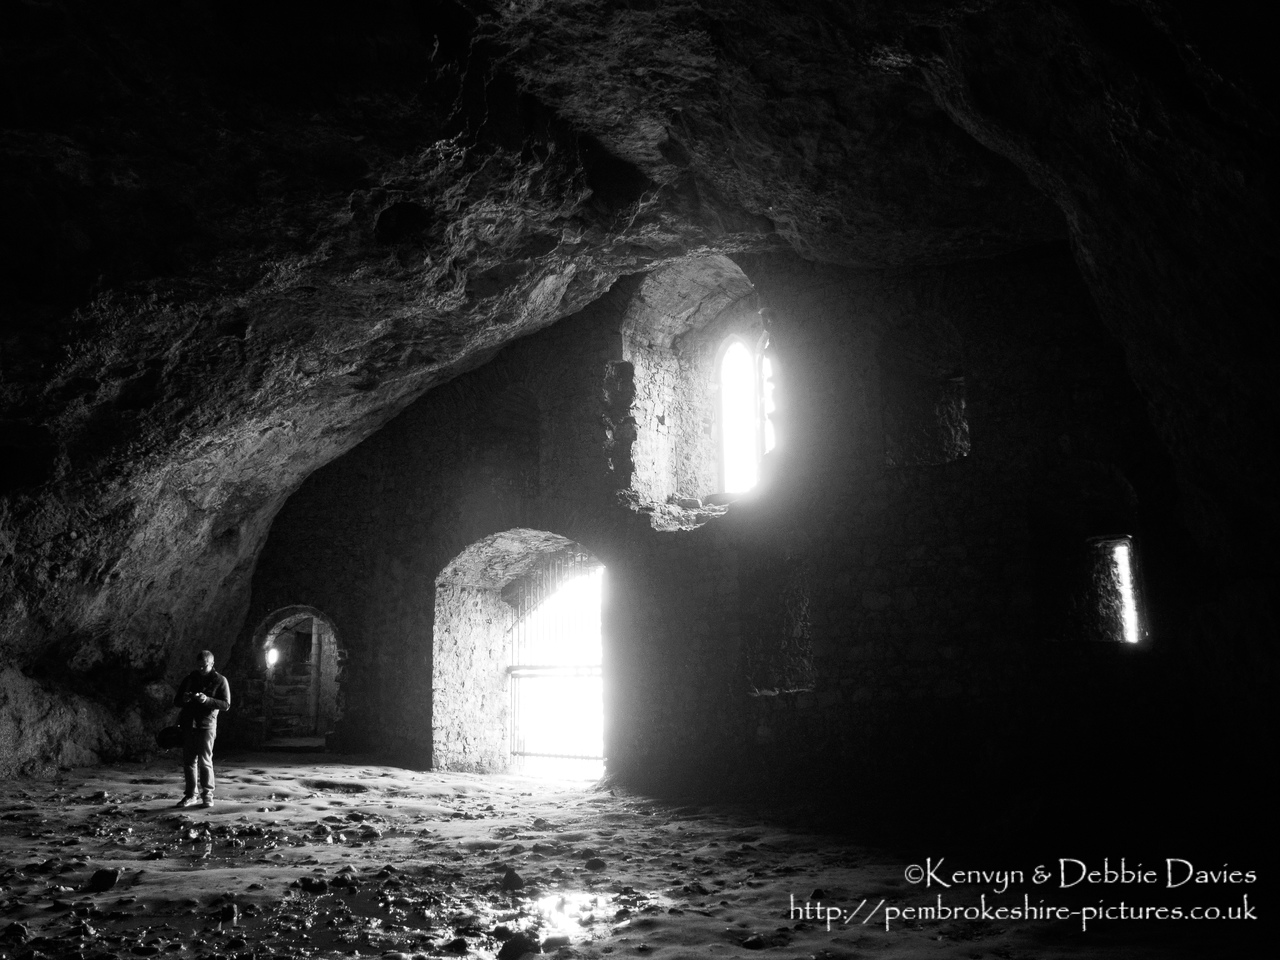 In the 13th century a 55-step spiral stairwell was created down to the natural cavern beneath the cavern, which gave access to the River Cleddau. The cavern was then believed to be used as a boathouse or sallyport.